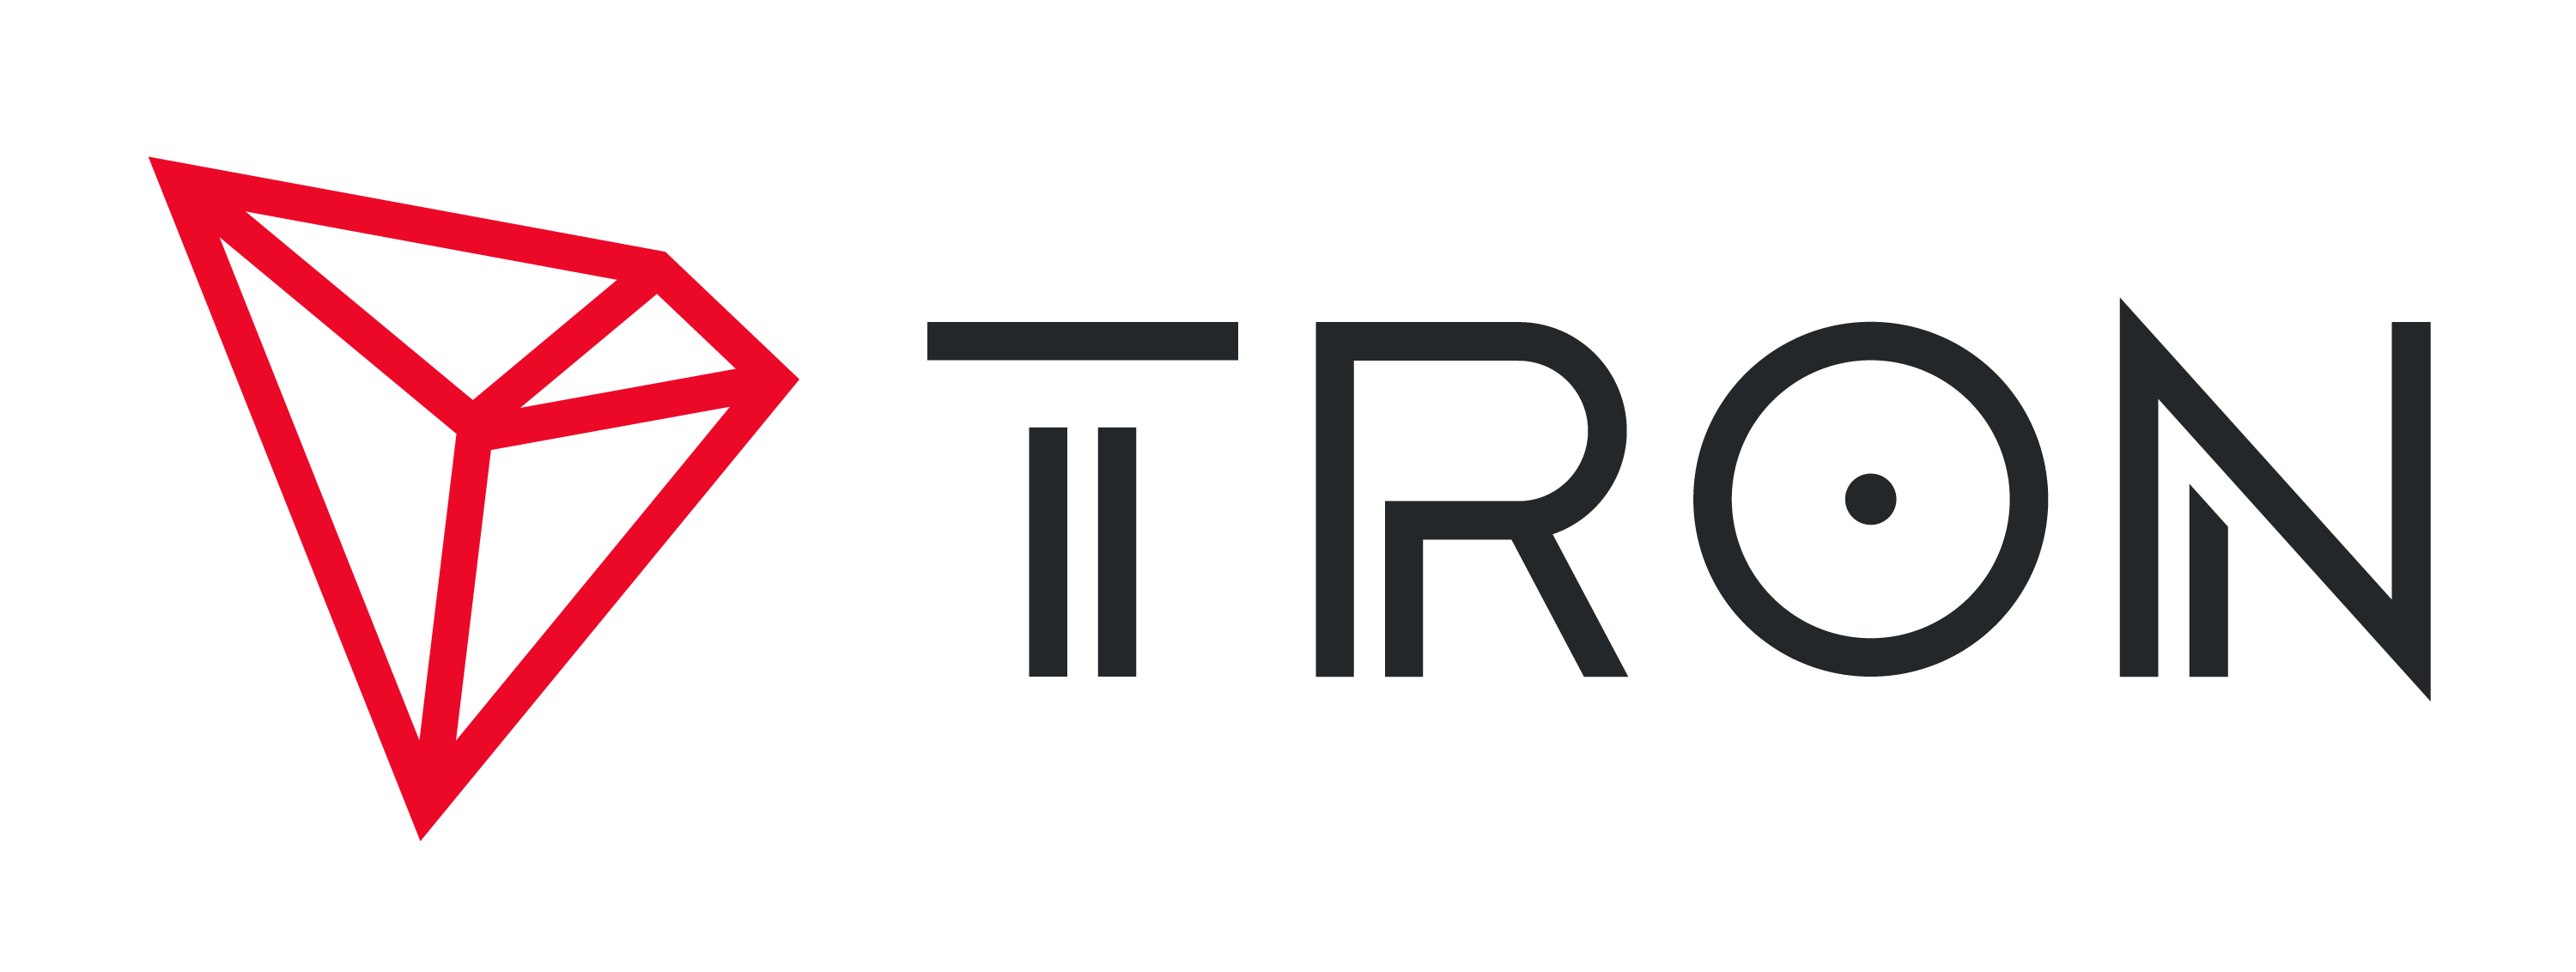 TRON | Decentralize The Web